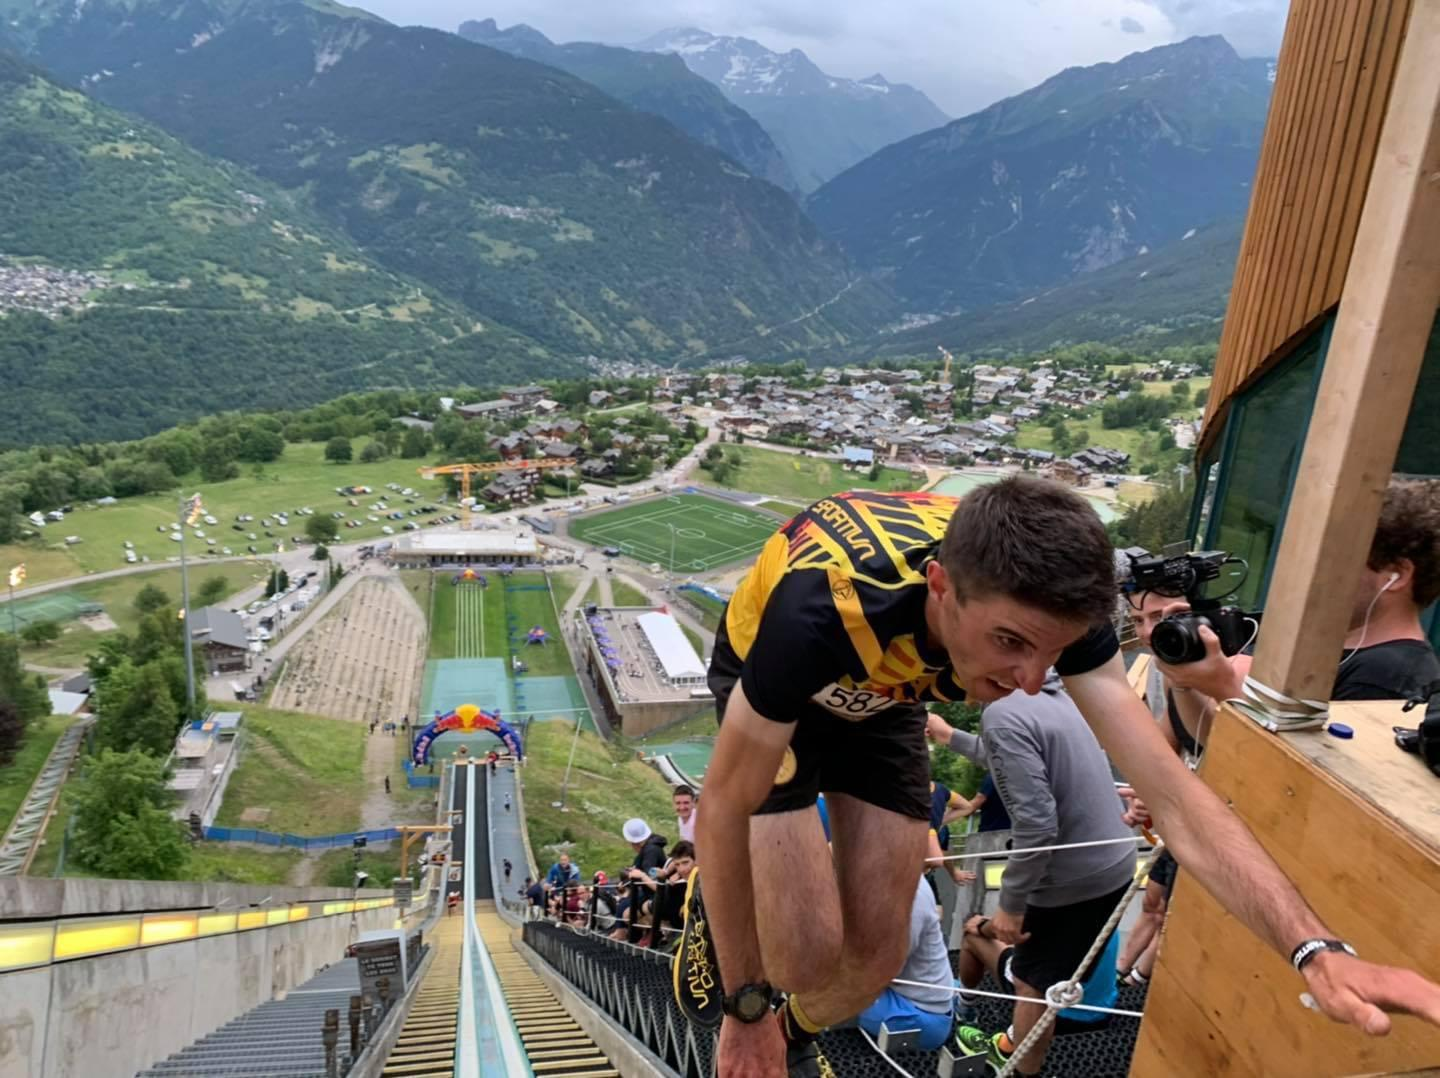 les skieurs-alpinistes remportent le Red Bull 400